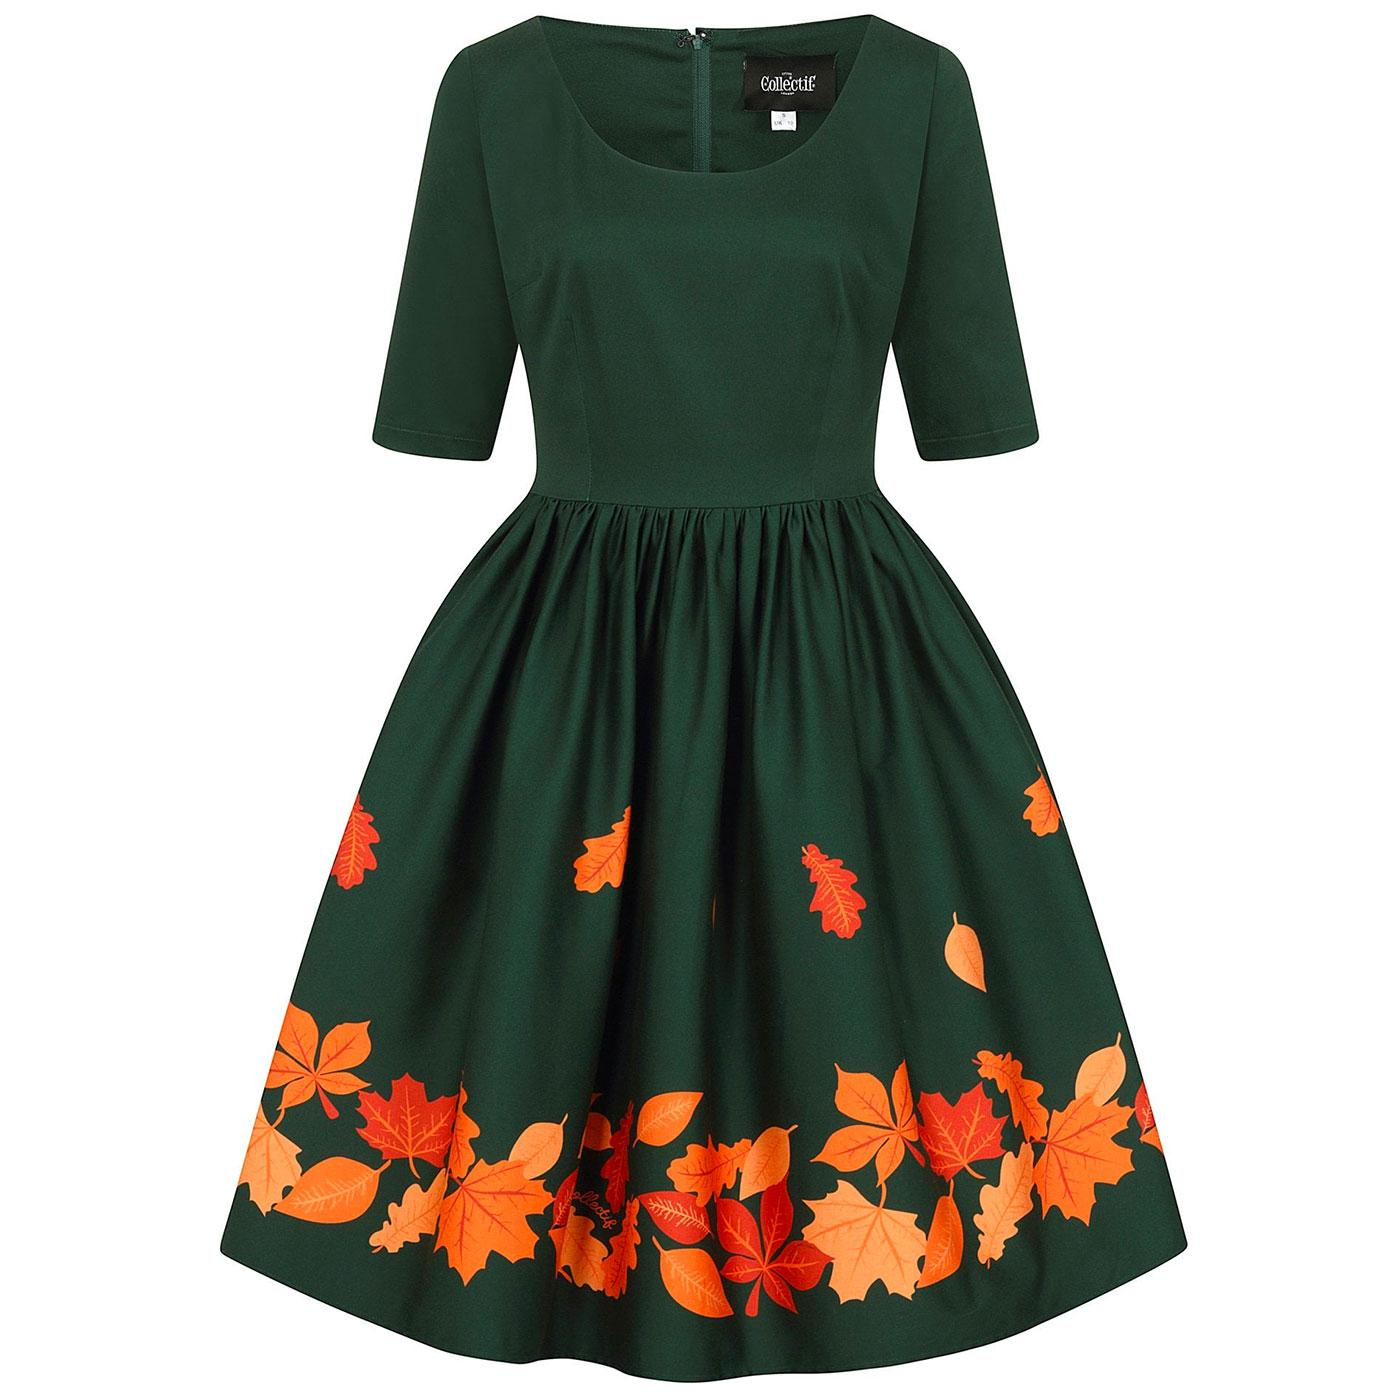 Amber-Lea COLLECTIF Autumn Leaves Swing Dress